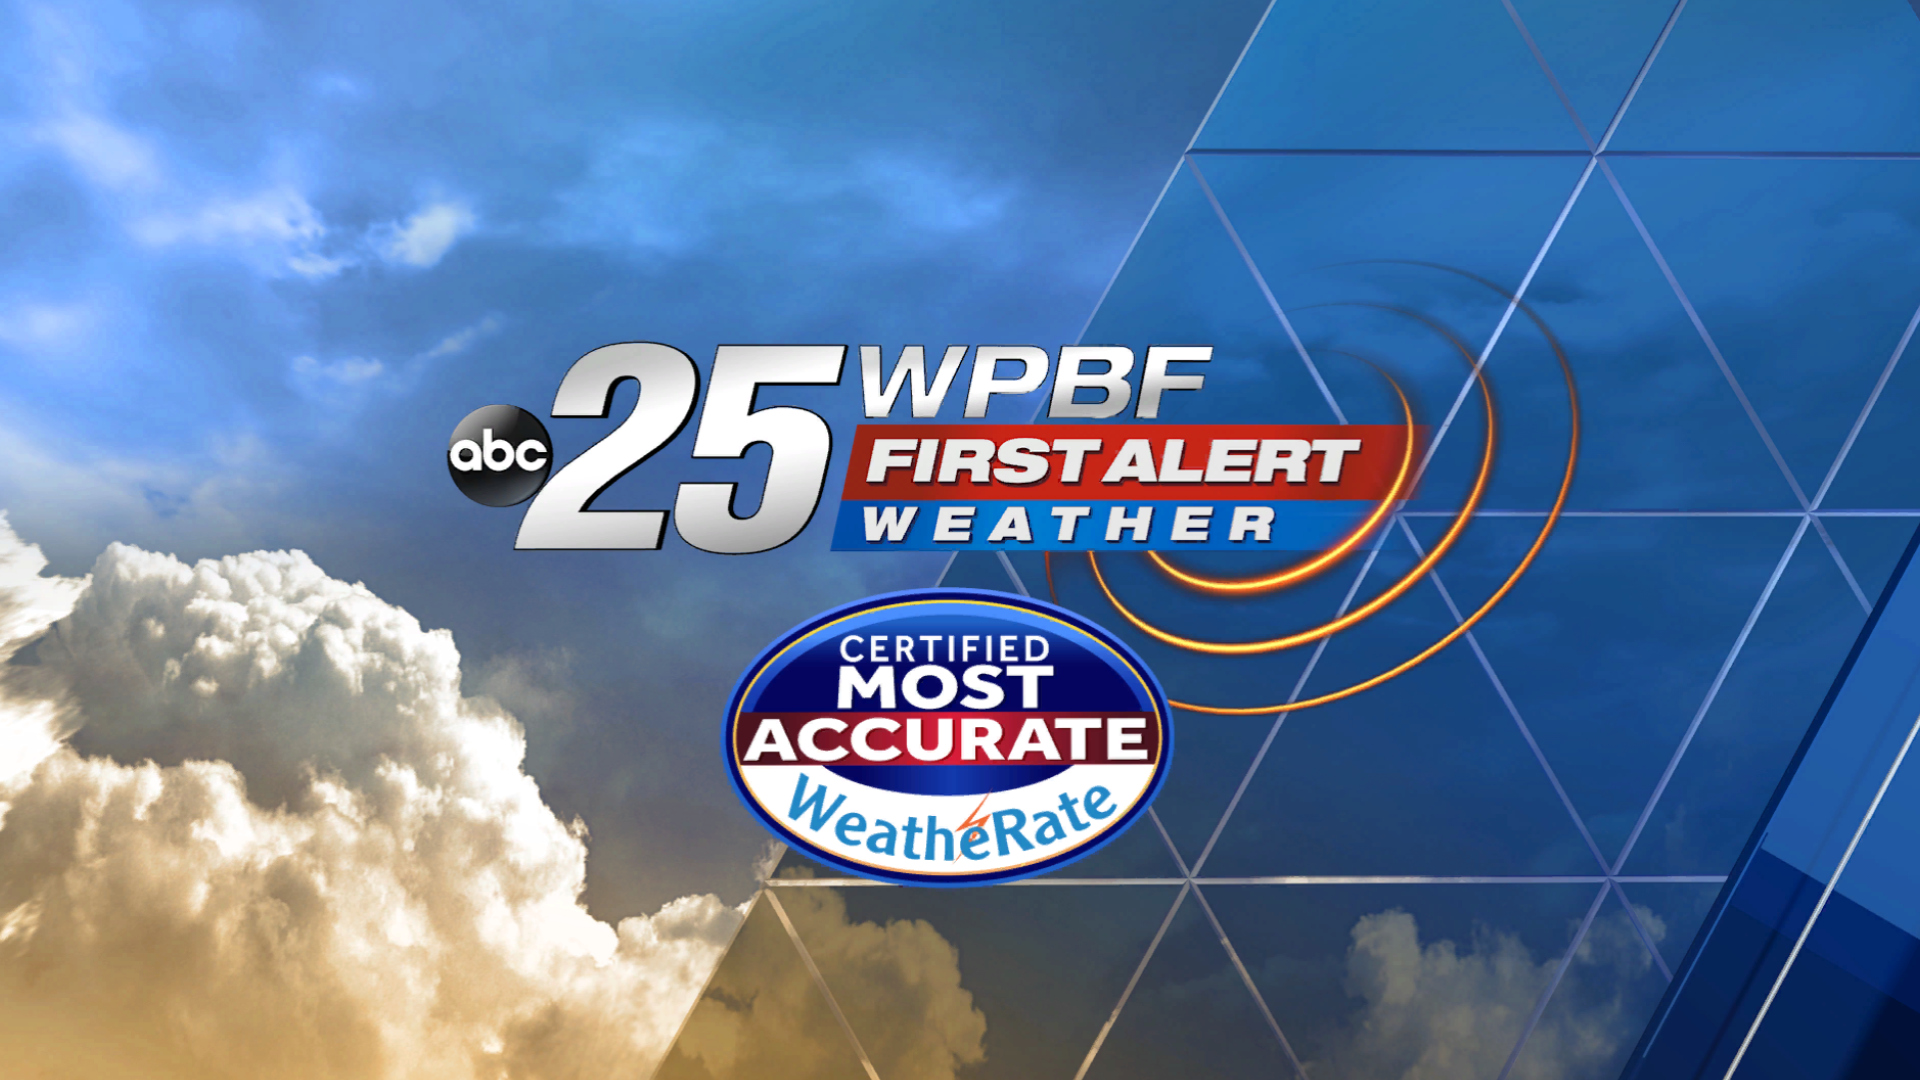 Significant weather advisory for Palm Beach County